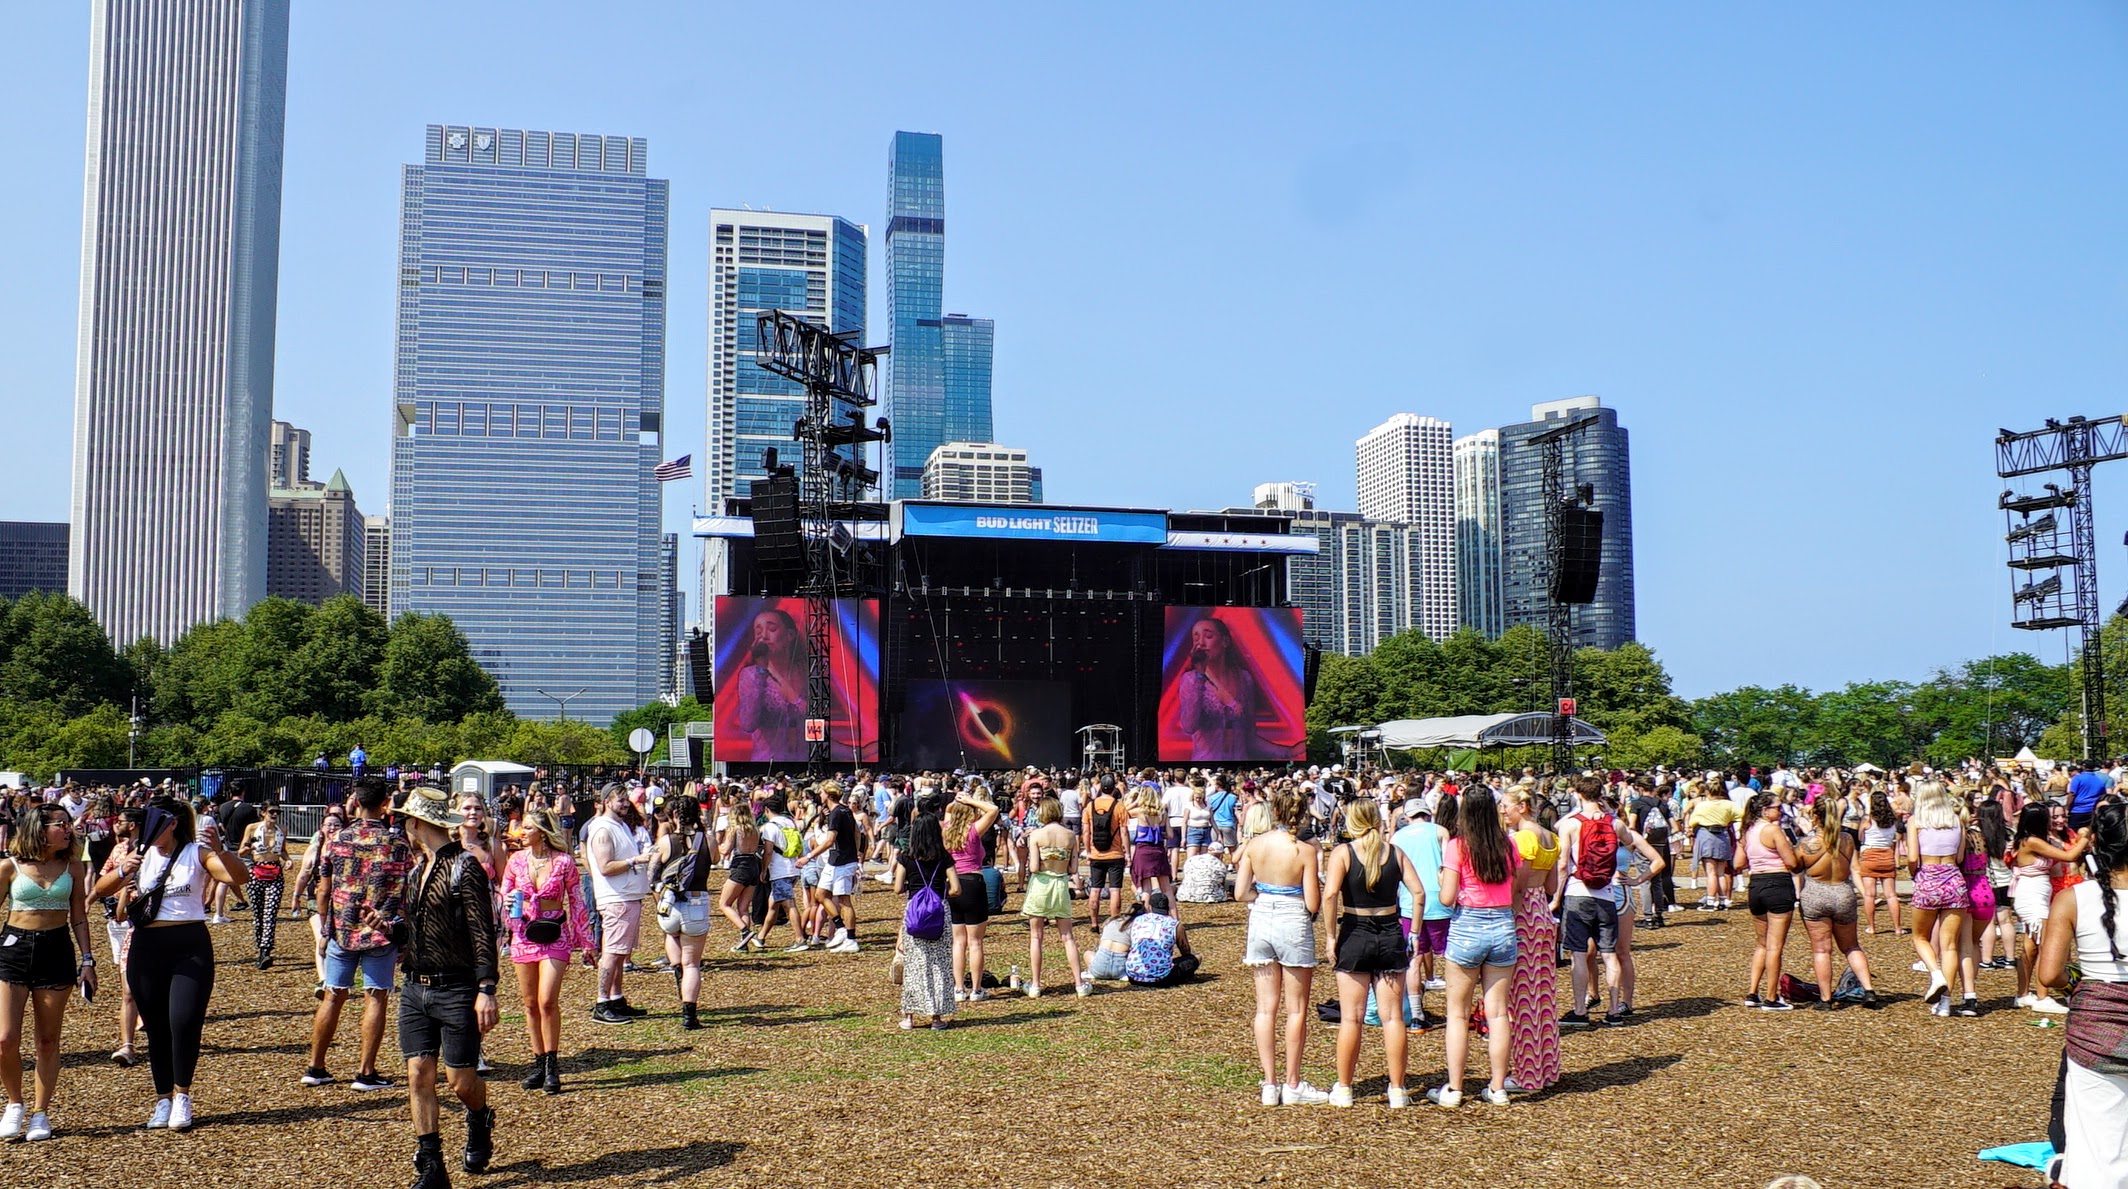 What it's like to attend Lollapalooza with thousands of people